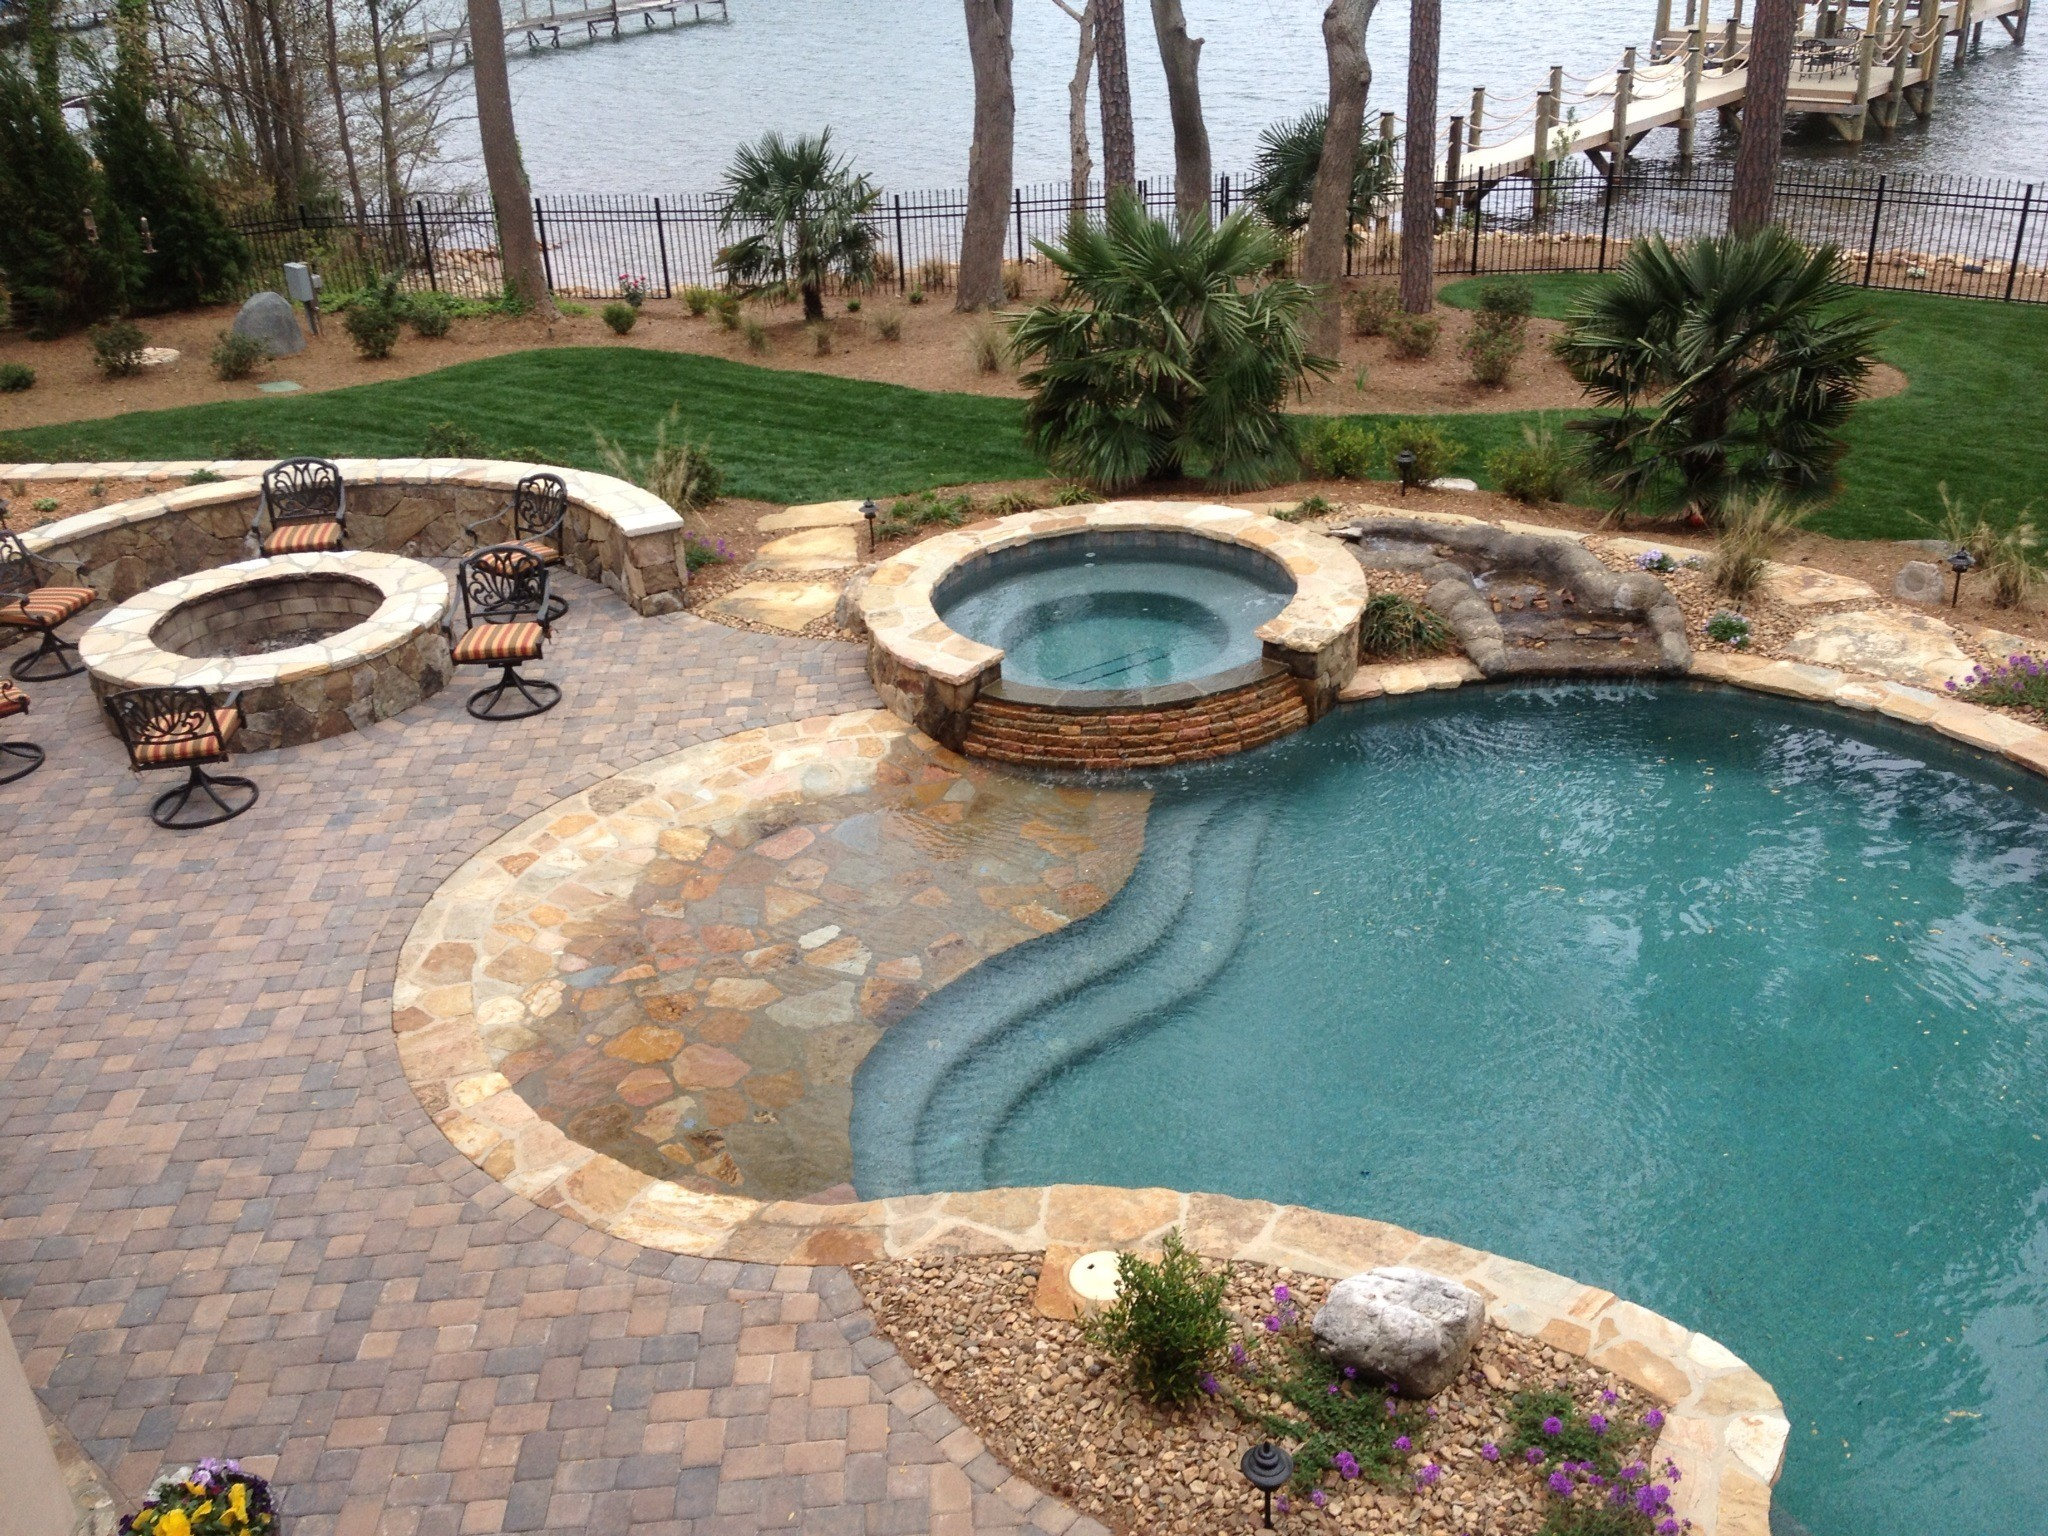 How Much Does It Cost To Build An Inground Pool